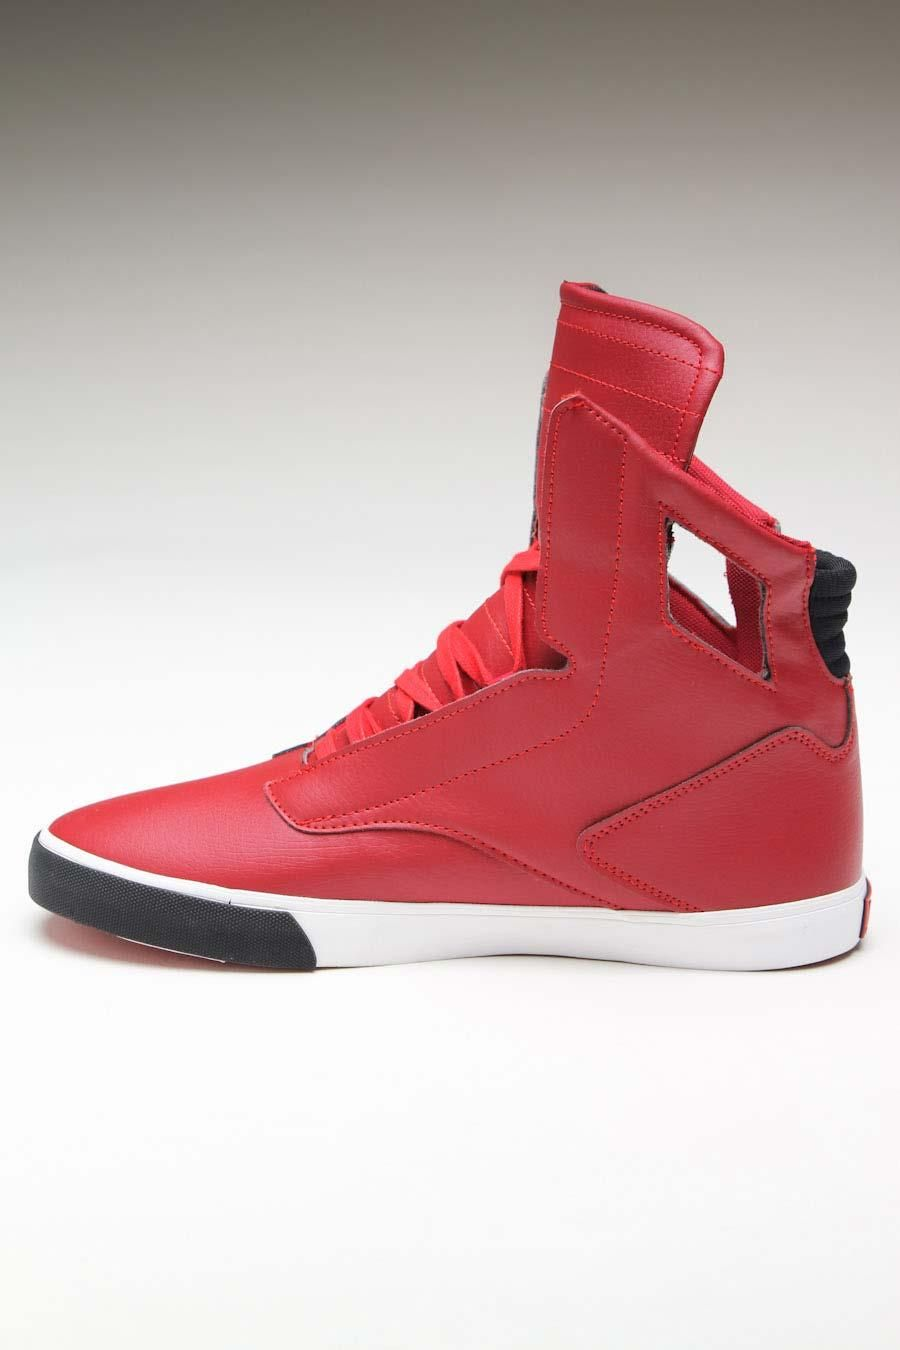 Explore Corporate Style, Men's Apparel, and more! RADII NOBLE VLC SNEAKER  RED/BLACK/WHITE